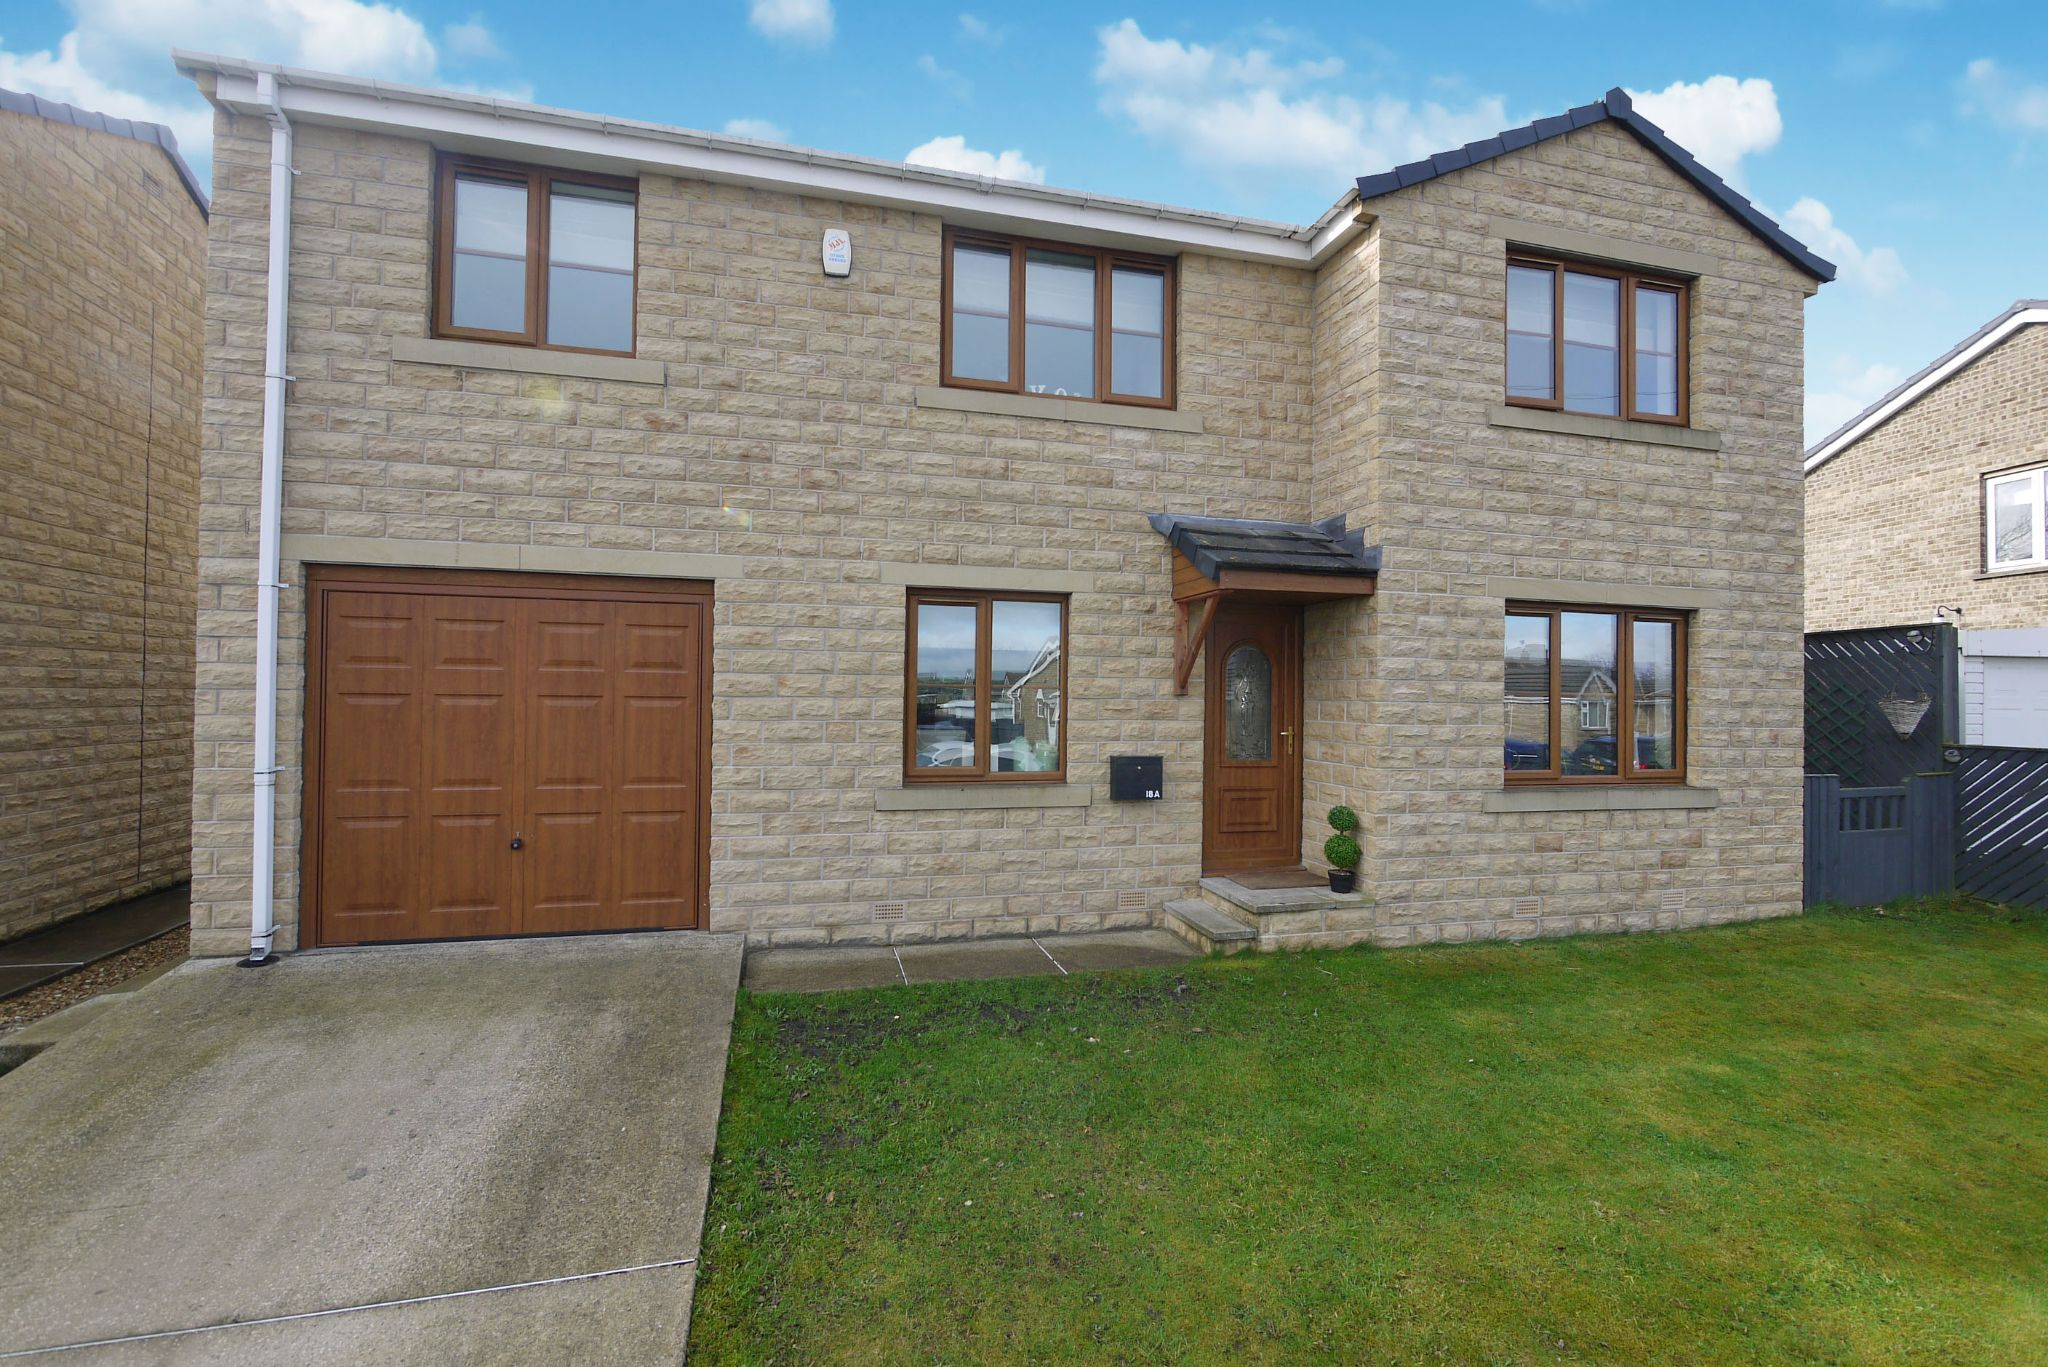 4 bedroom detached house For Sale in Brighouse - Main Shot.